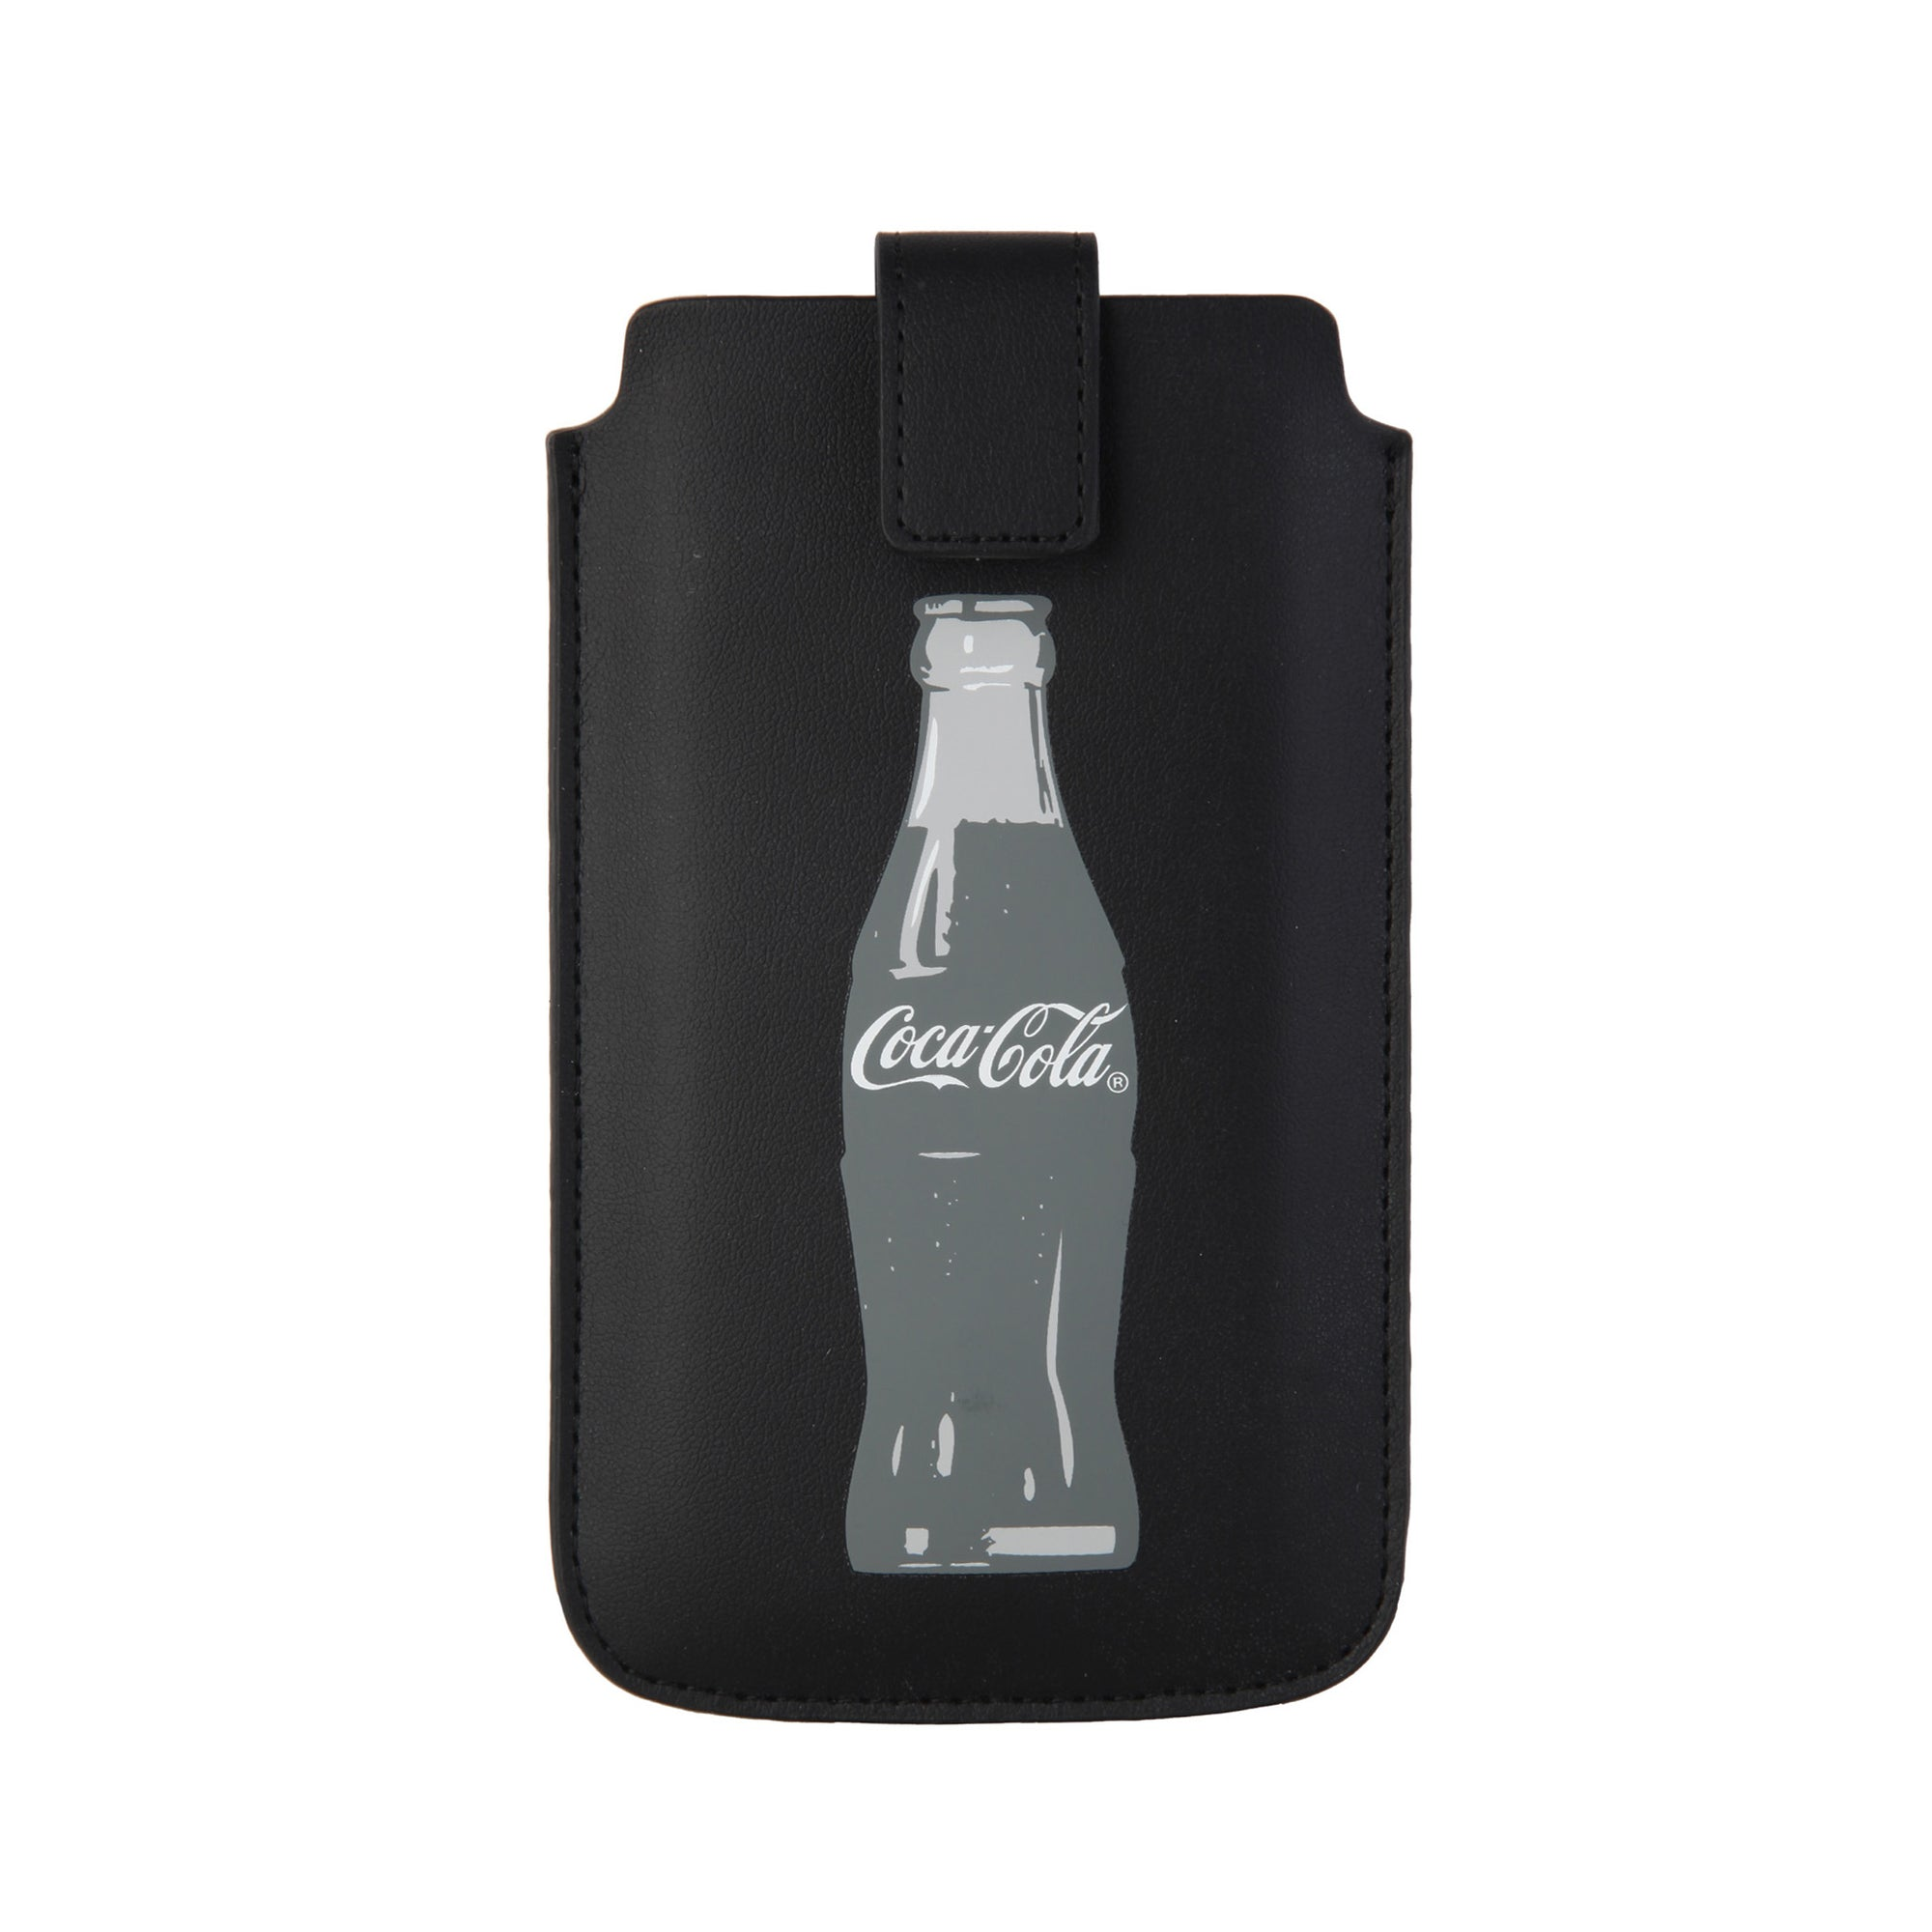 Coca Cola Unisex Black Cases Mod. Cover | Wachoria